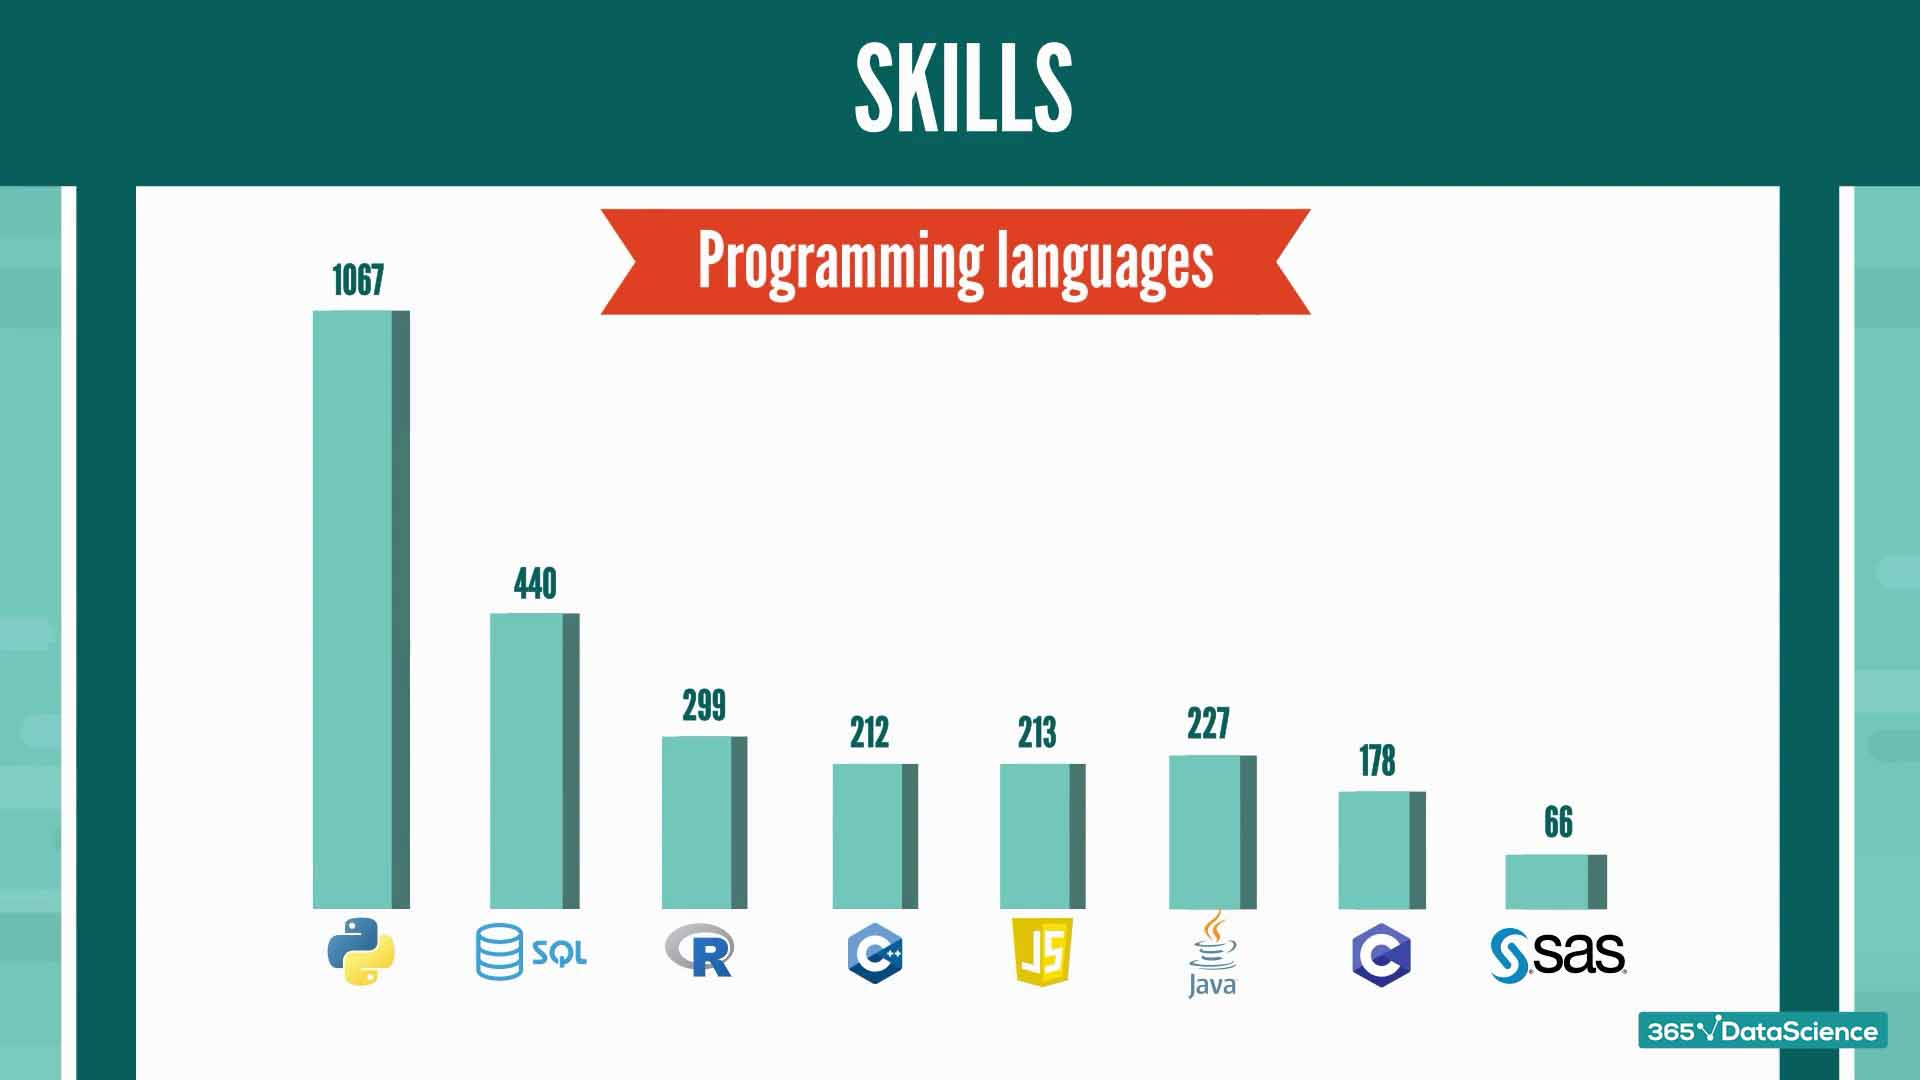 Other required programming languages for Python job roles